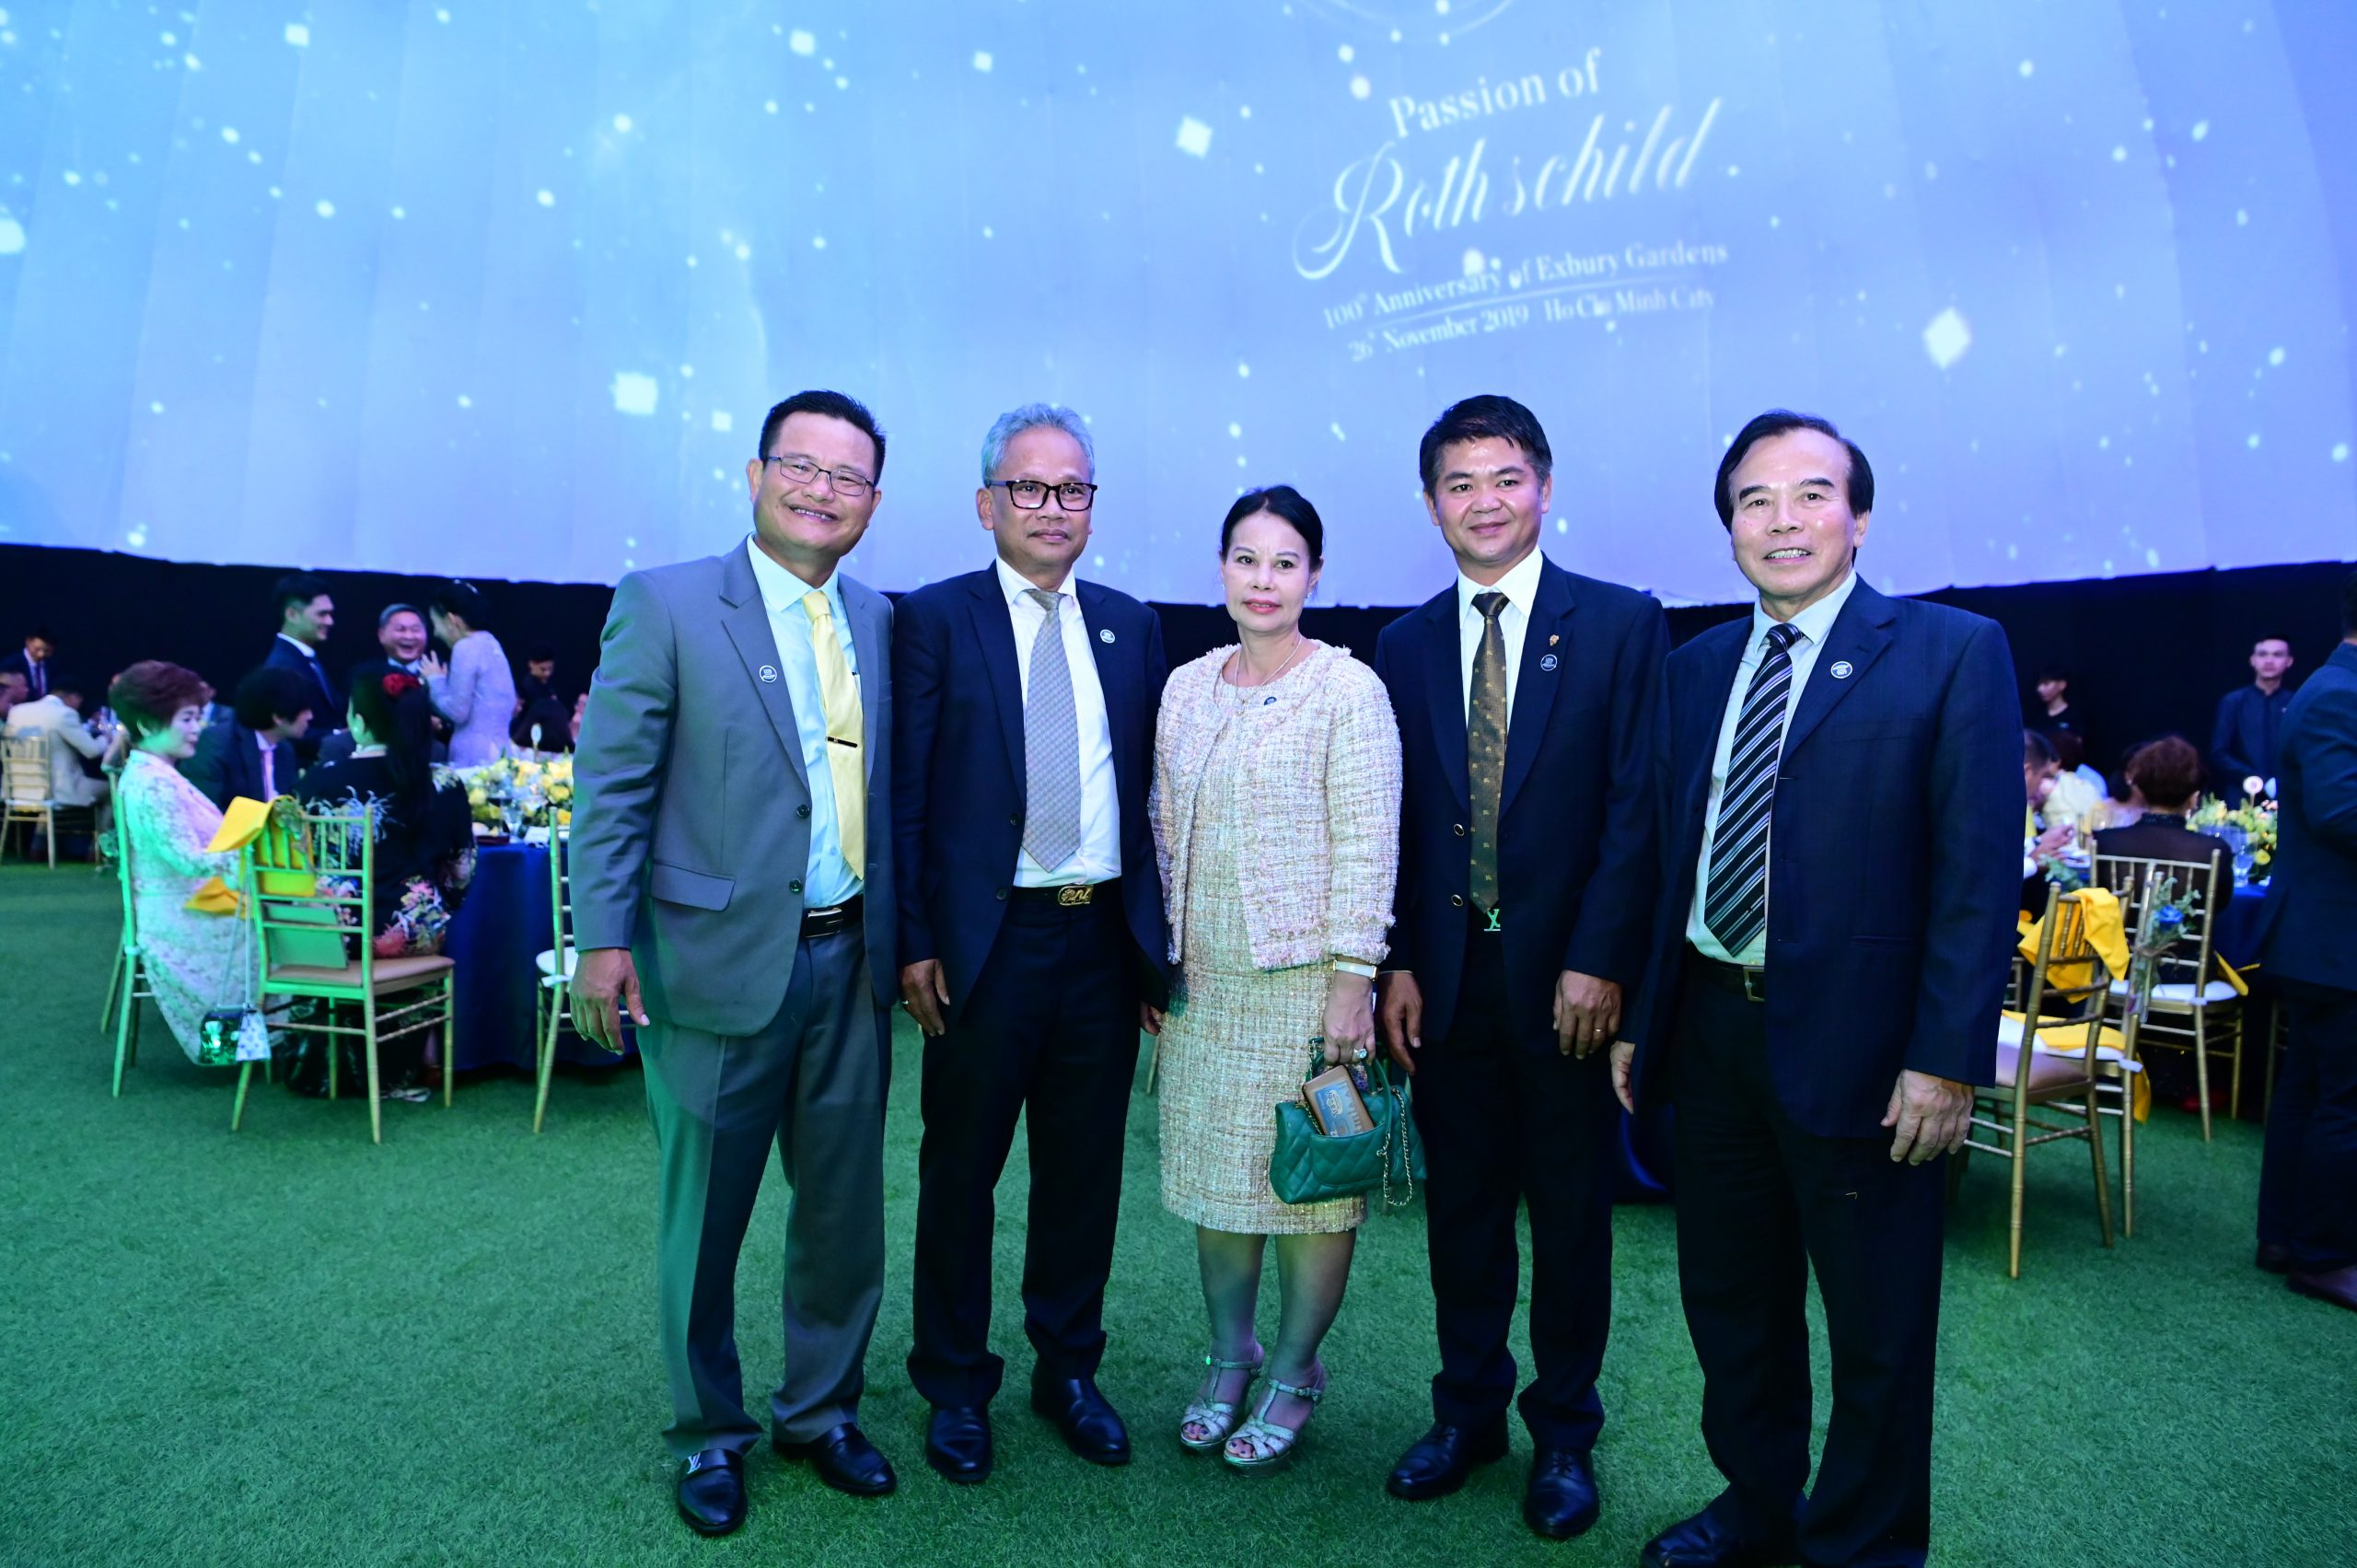 Lina 2nd Concert: Passion of Rothschild 2019 in Ho Chi Minh City